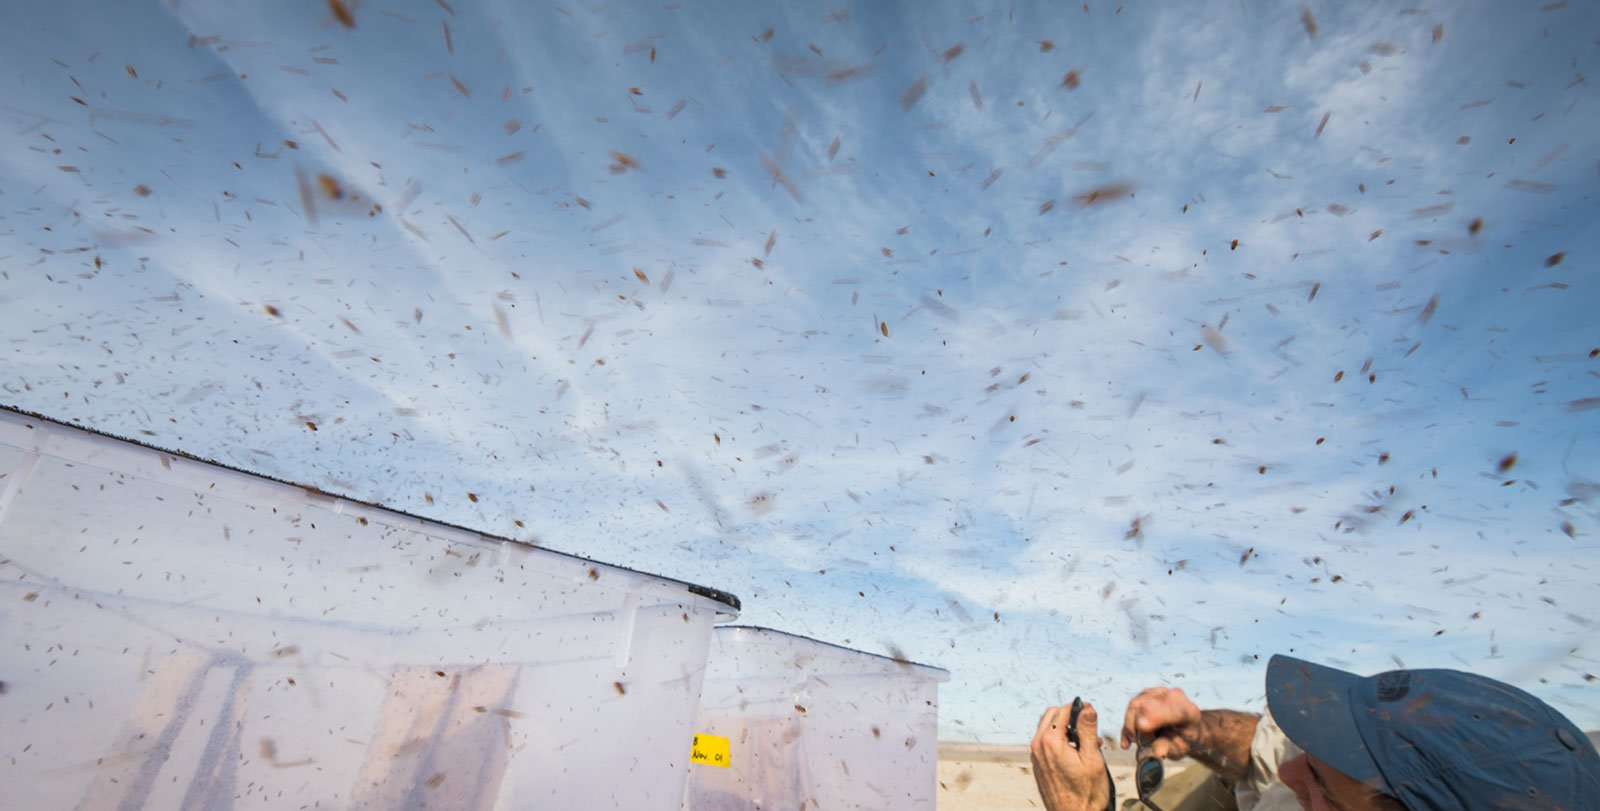 Thousands of fruit flies exit a bucket on a dry lakebed